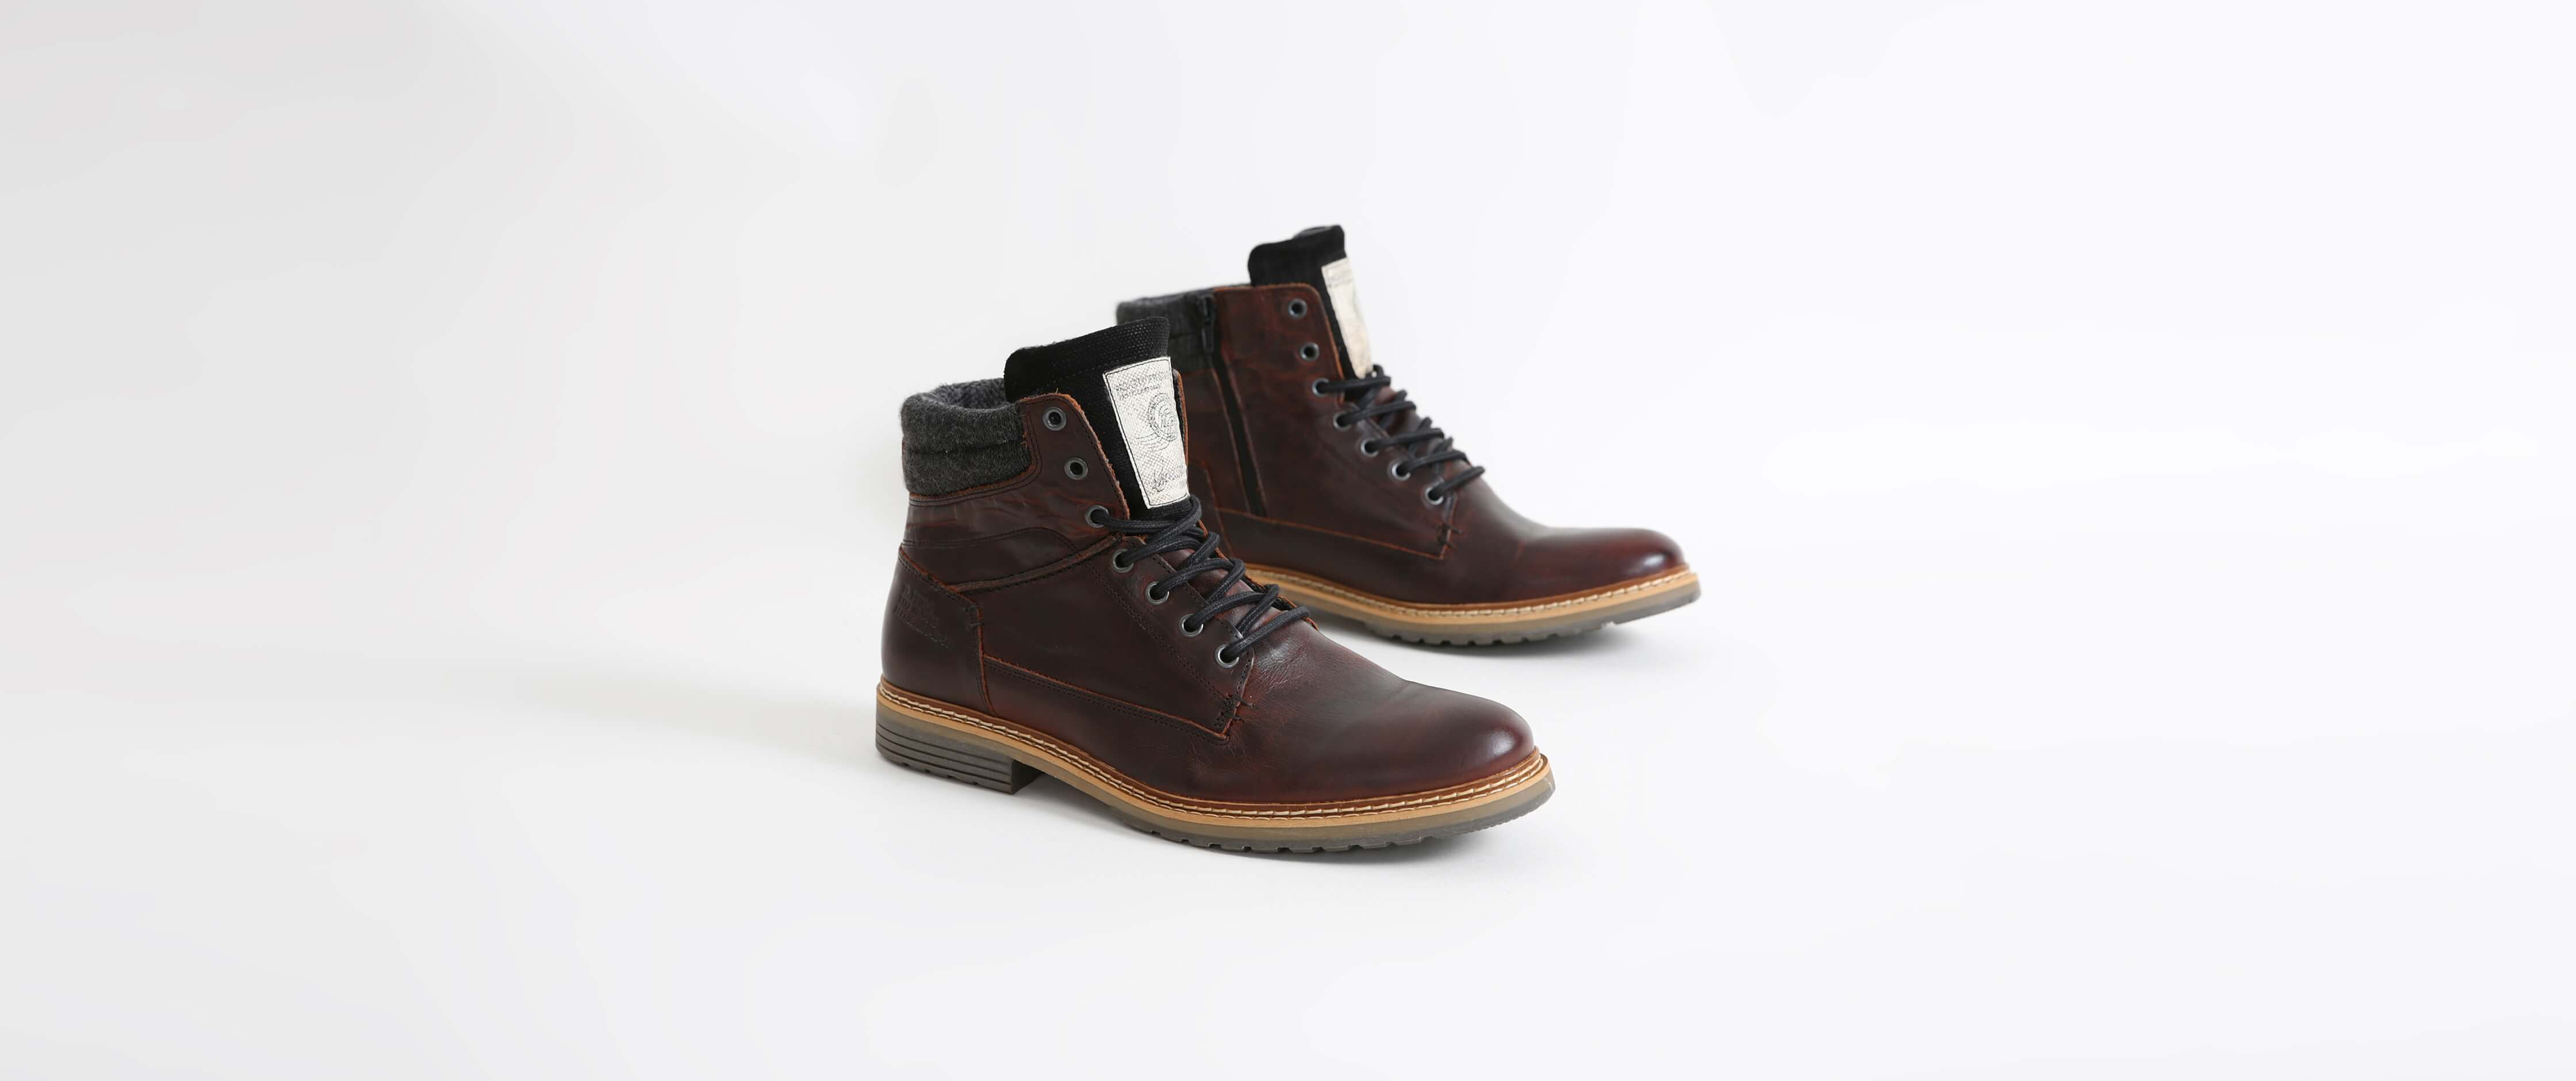 Shoes For Men Boots Buckle